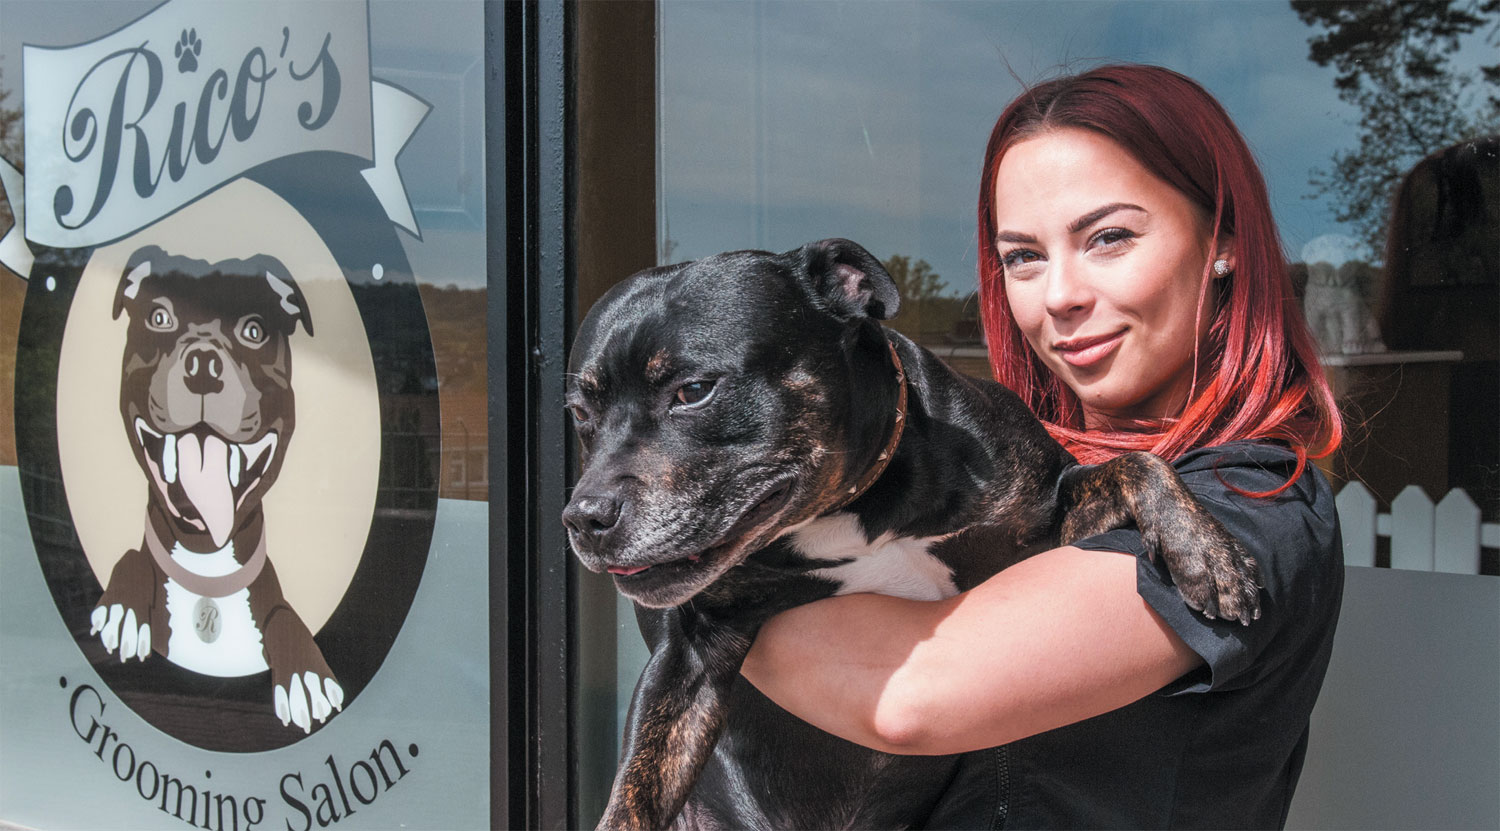 Rico's Grooming Salon is June's business of the month